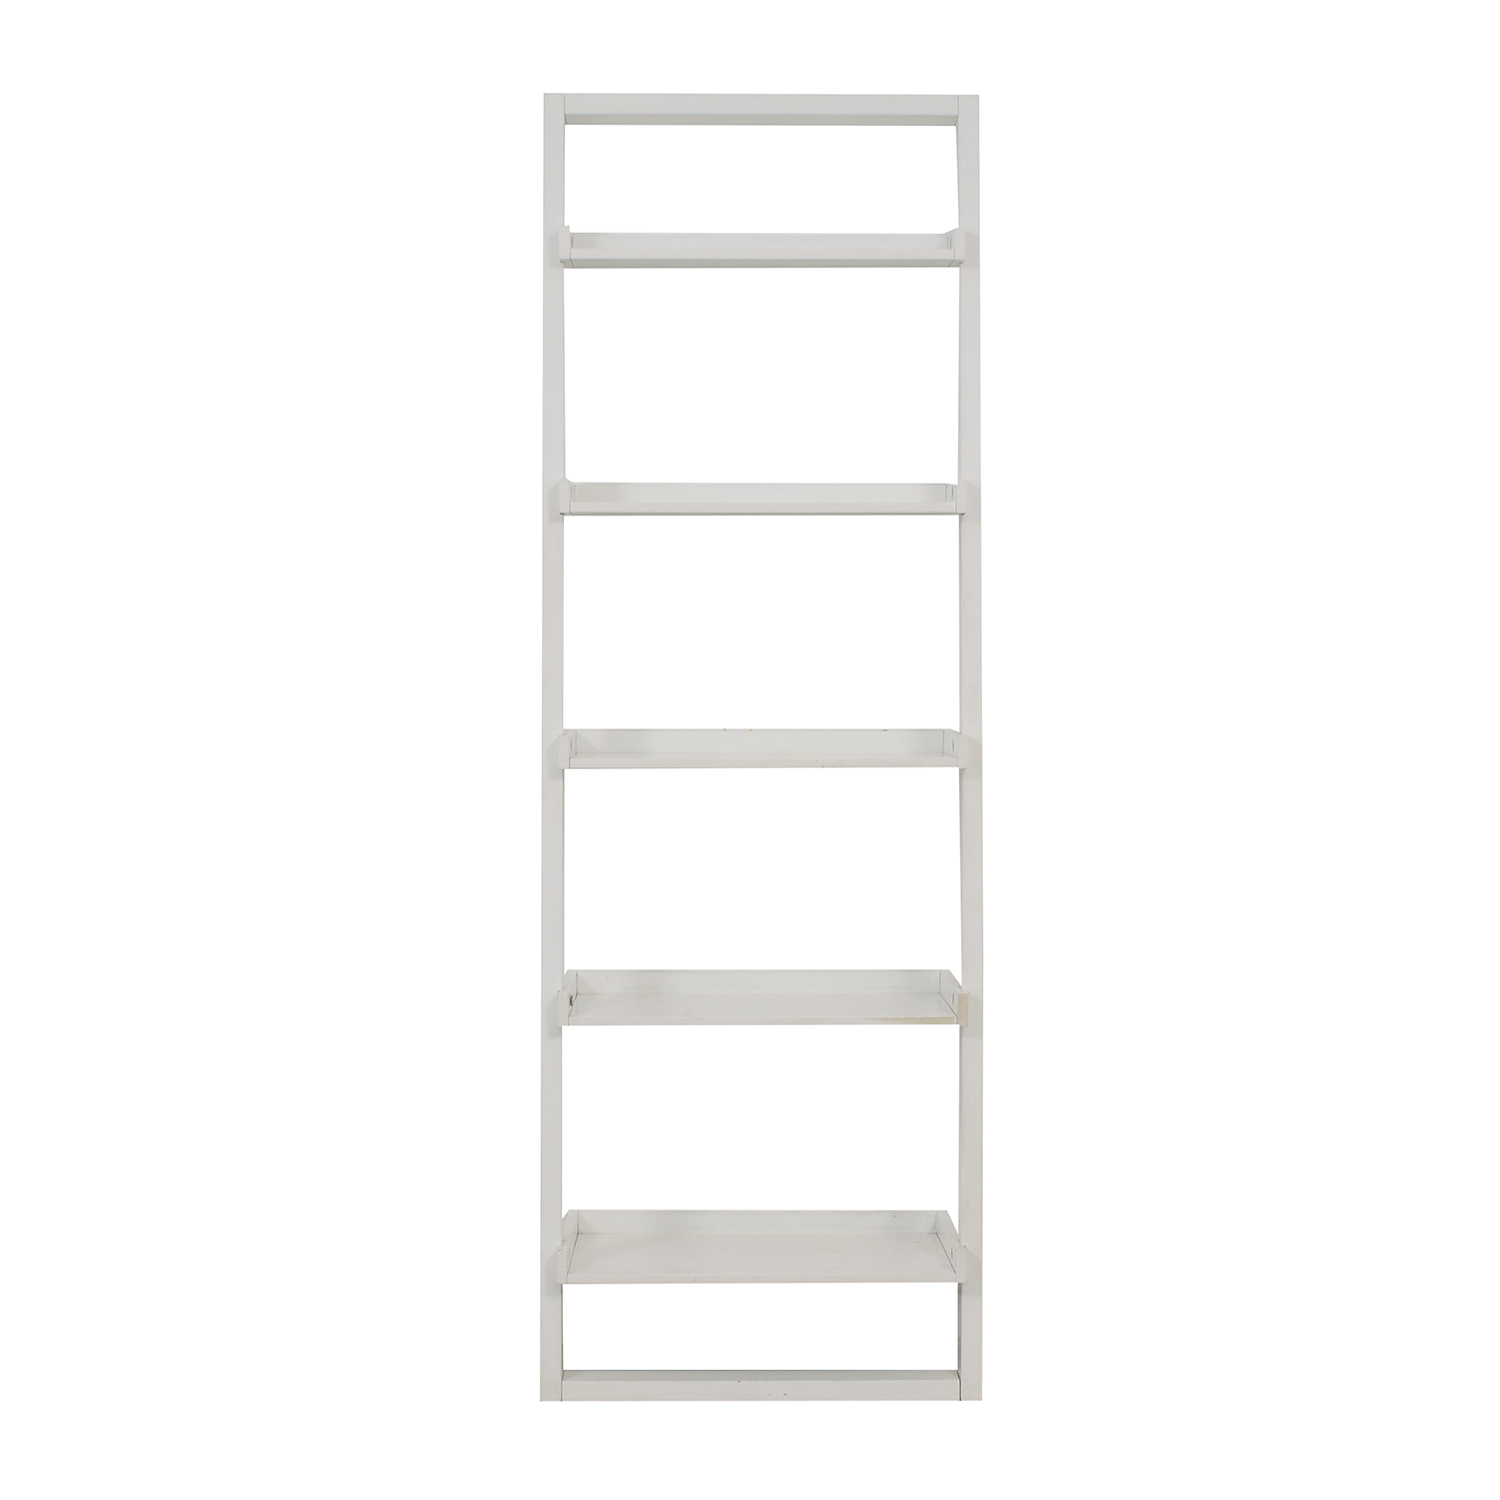 Crate & Barrel Crate & Barrel Sawyer White Leaning Bookcase second hand